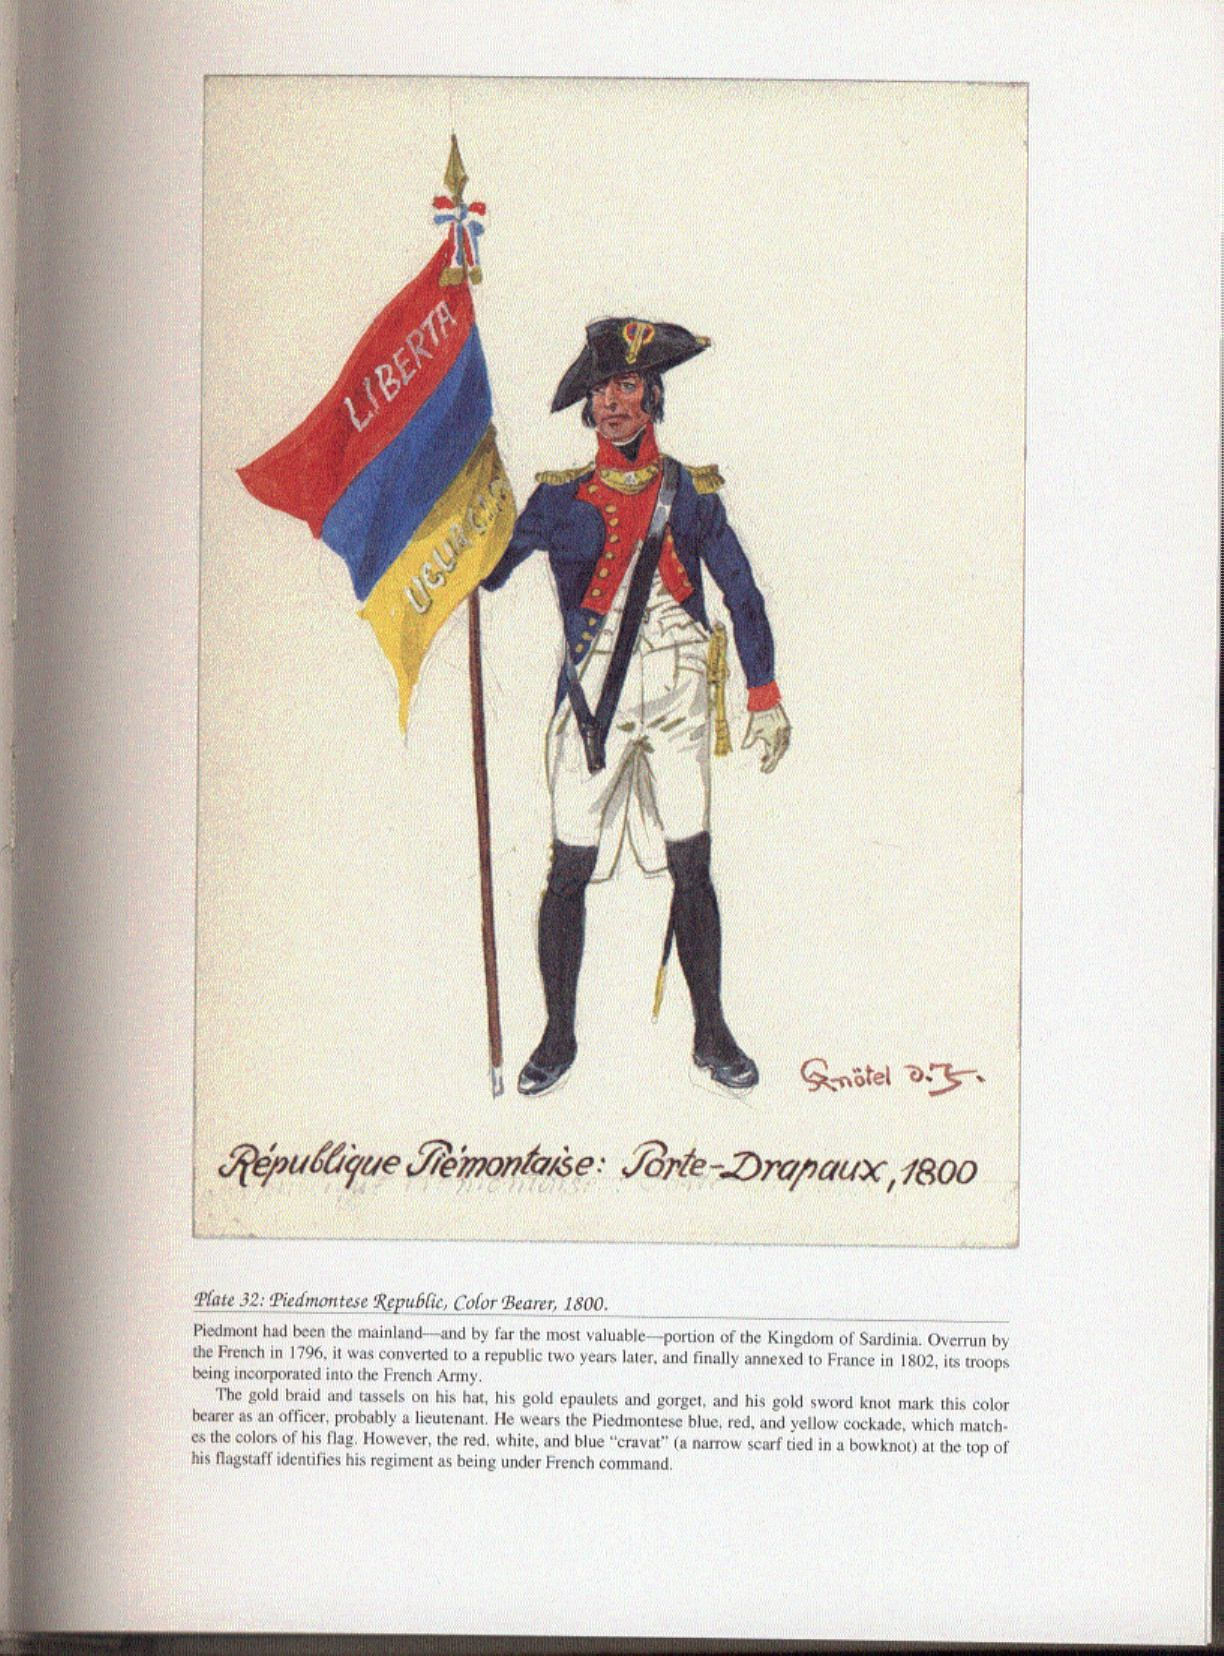 Revolutionary Armies Plate 32 Piedmontese Republic Color Bearer 1800 Guerre Revolutionnaires France